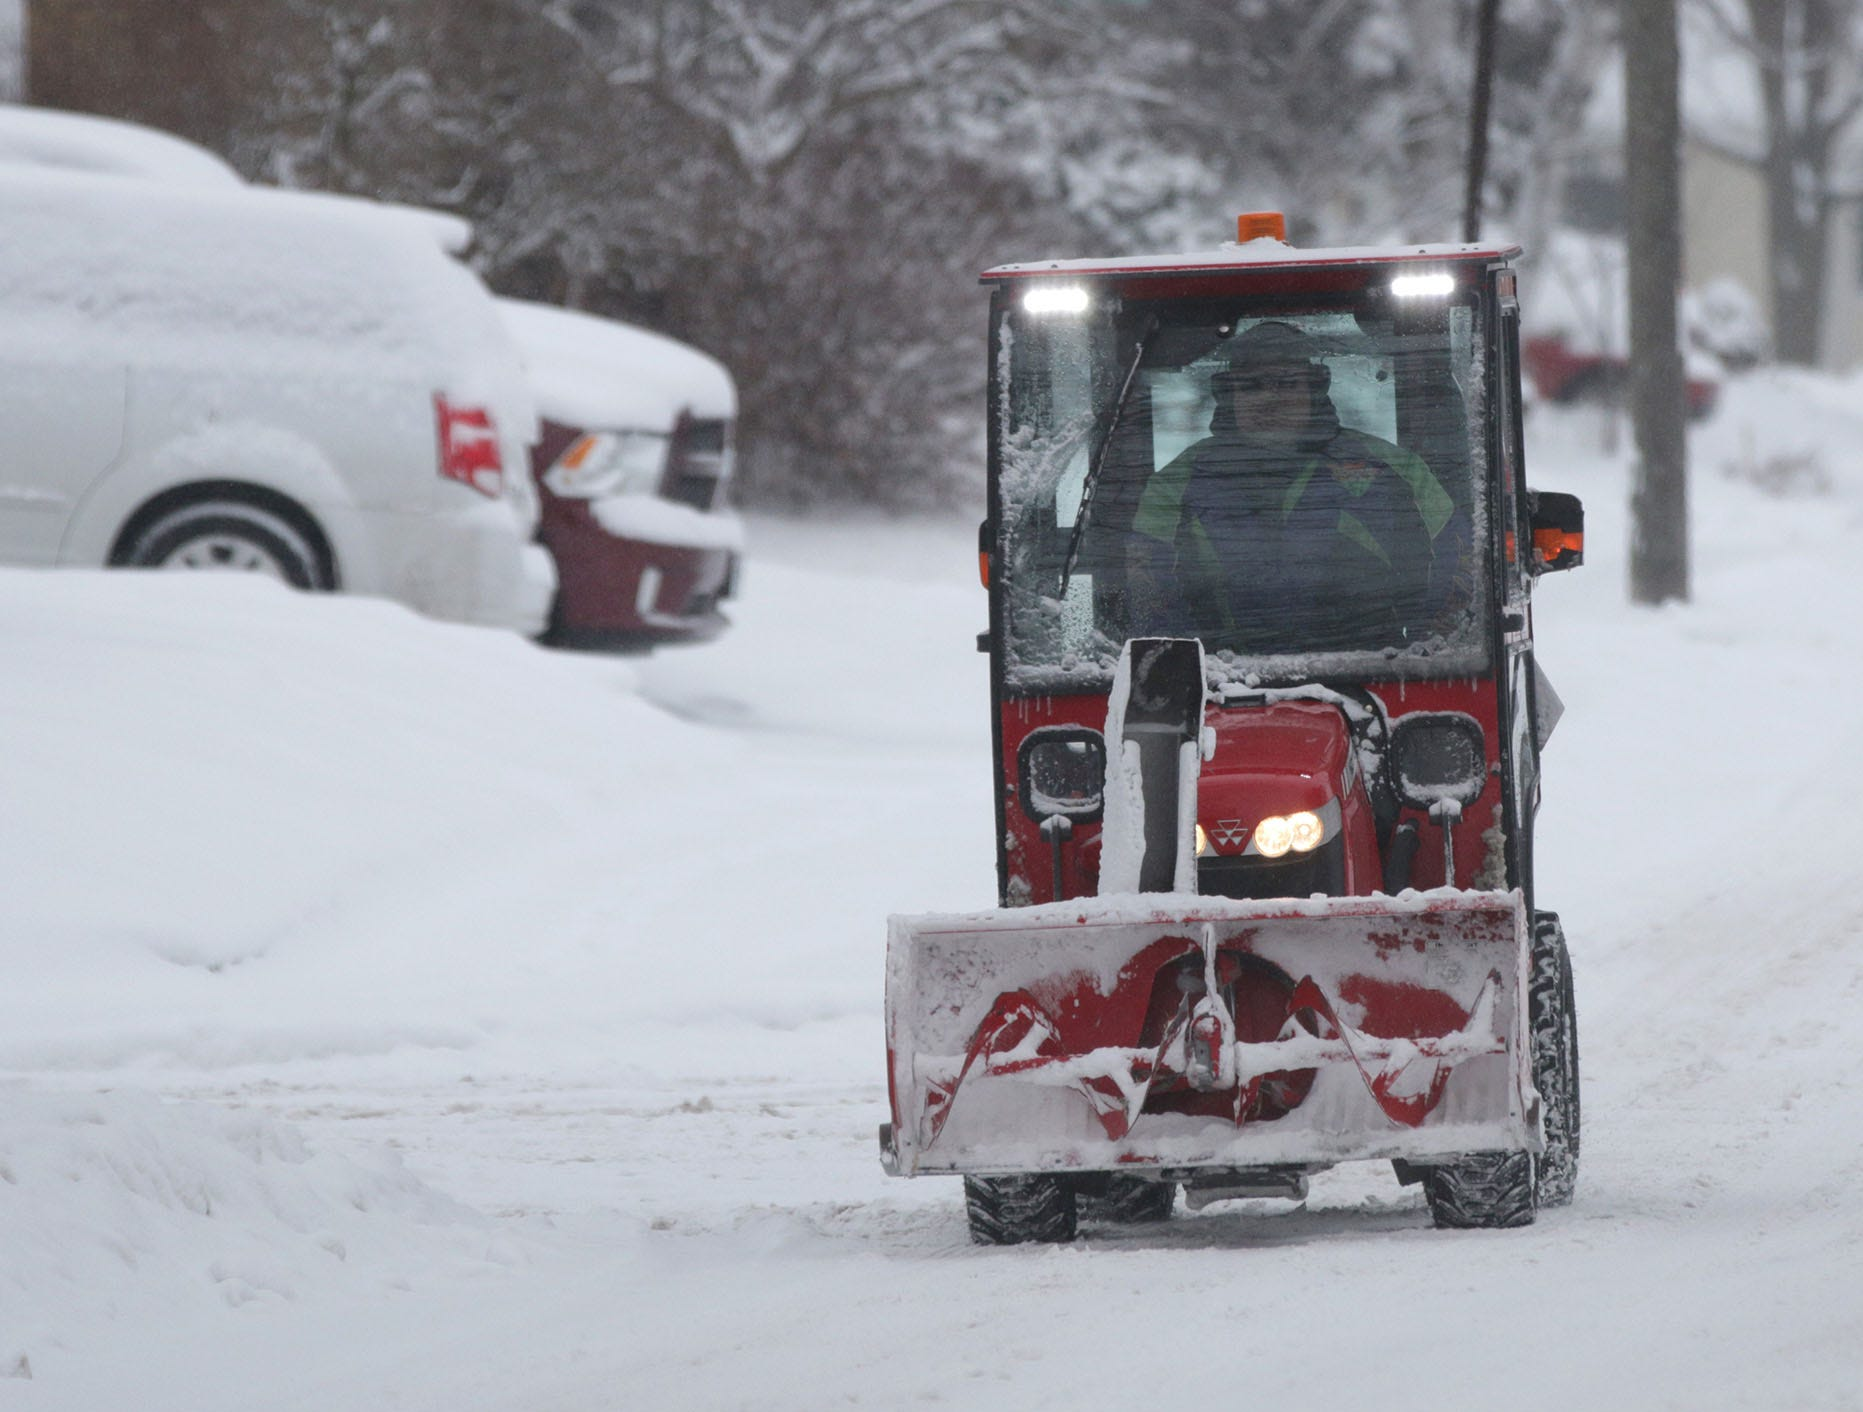 A man drives a covered snow blower down Ashland Avenue, Wednesday, January 23, 2019, in Sheboygan, Wis.